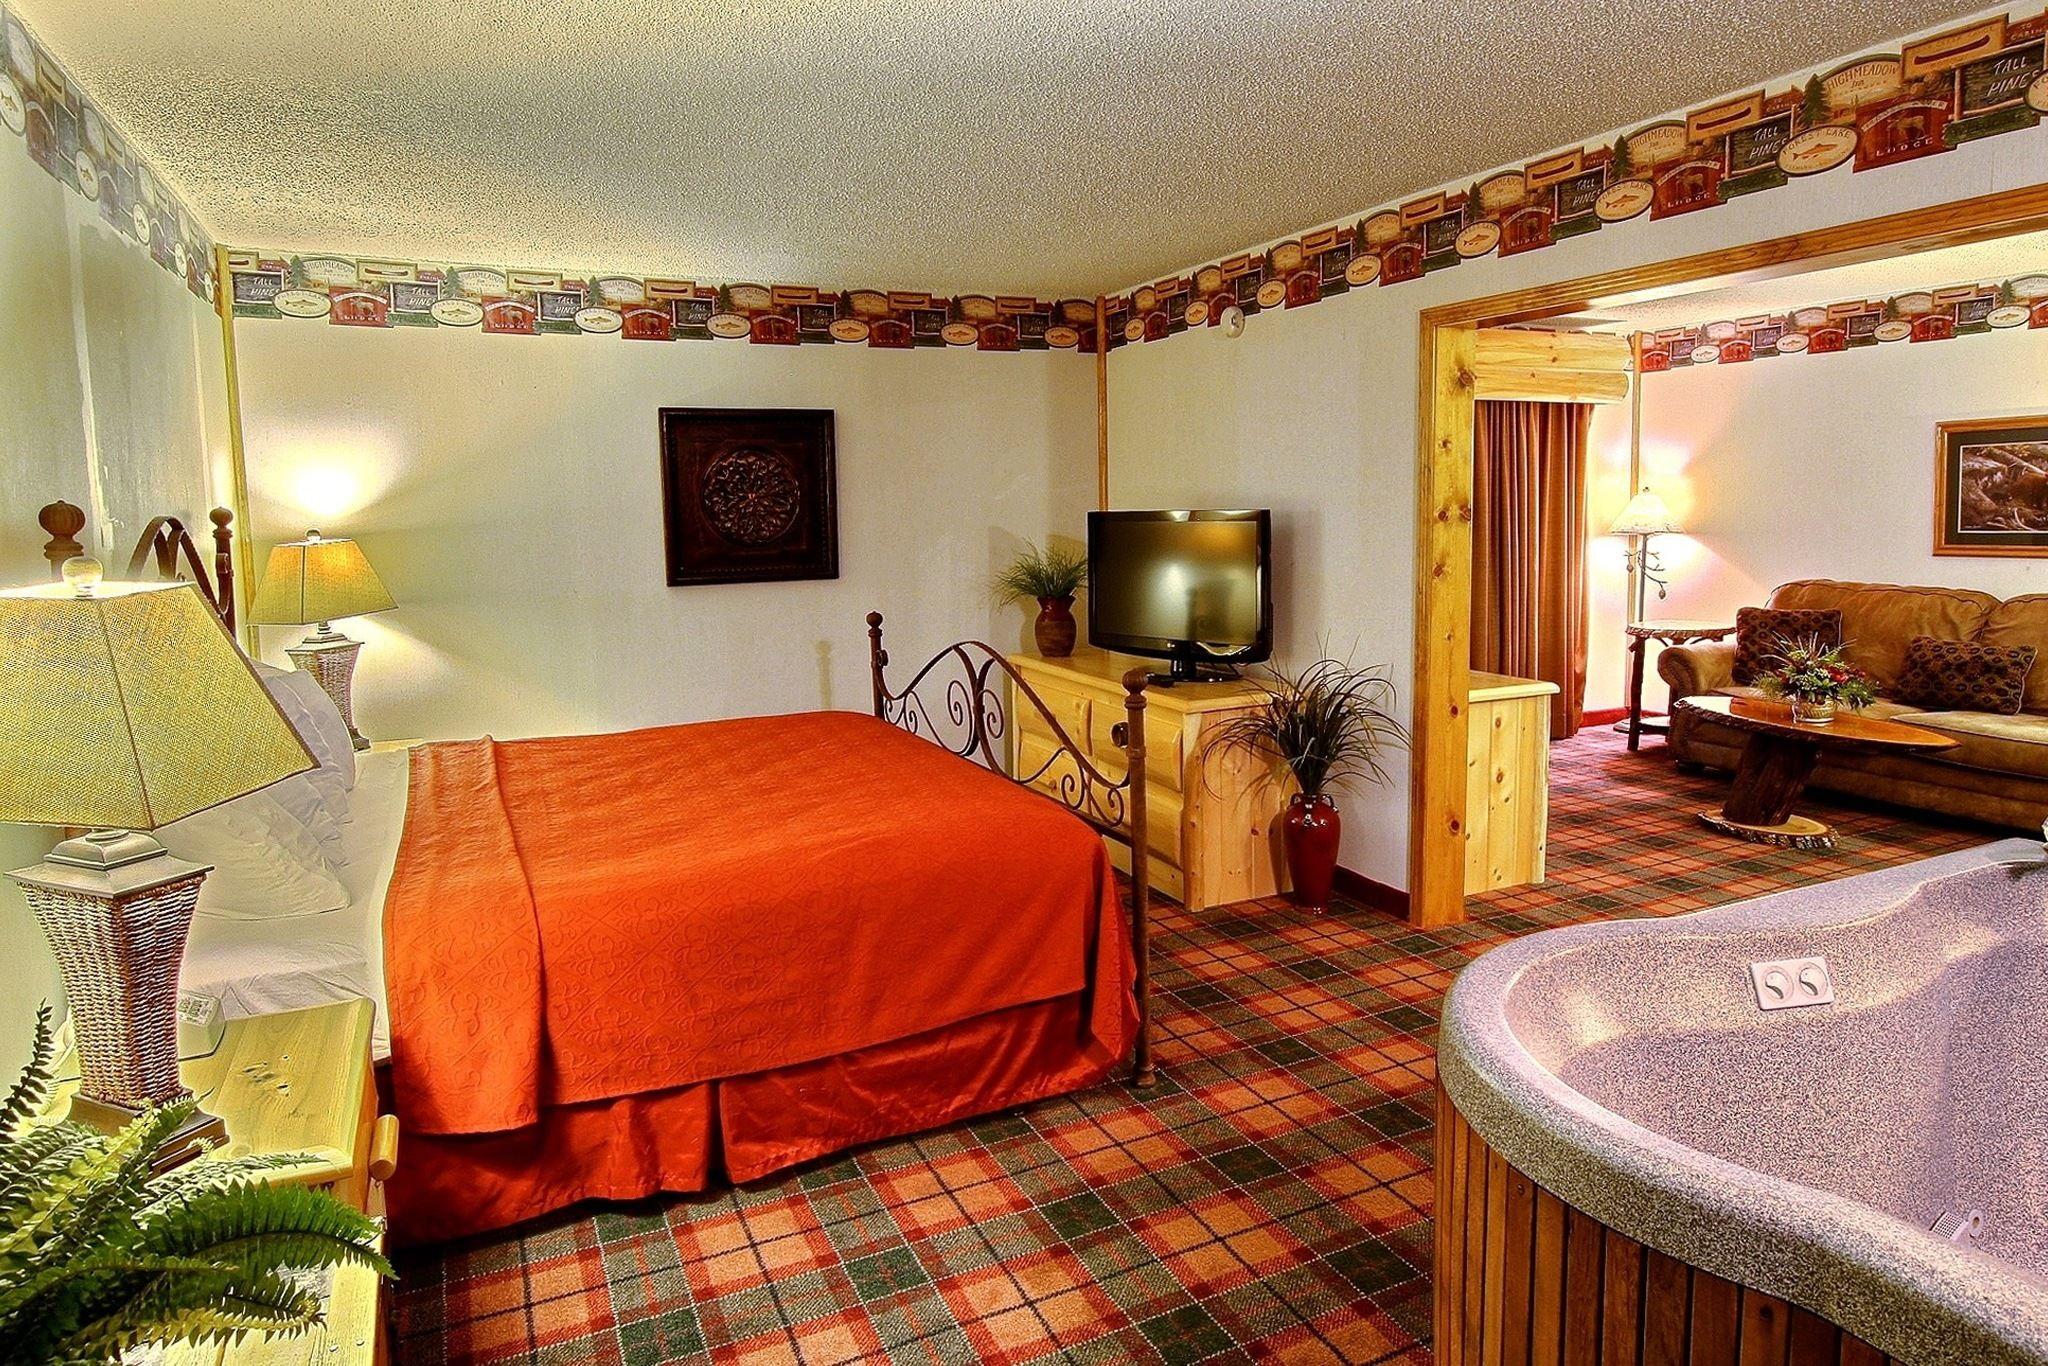 West Branch Quality Inn Bridal Suite With Hot Tub With Images